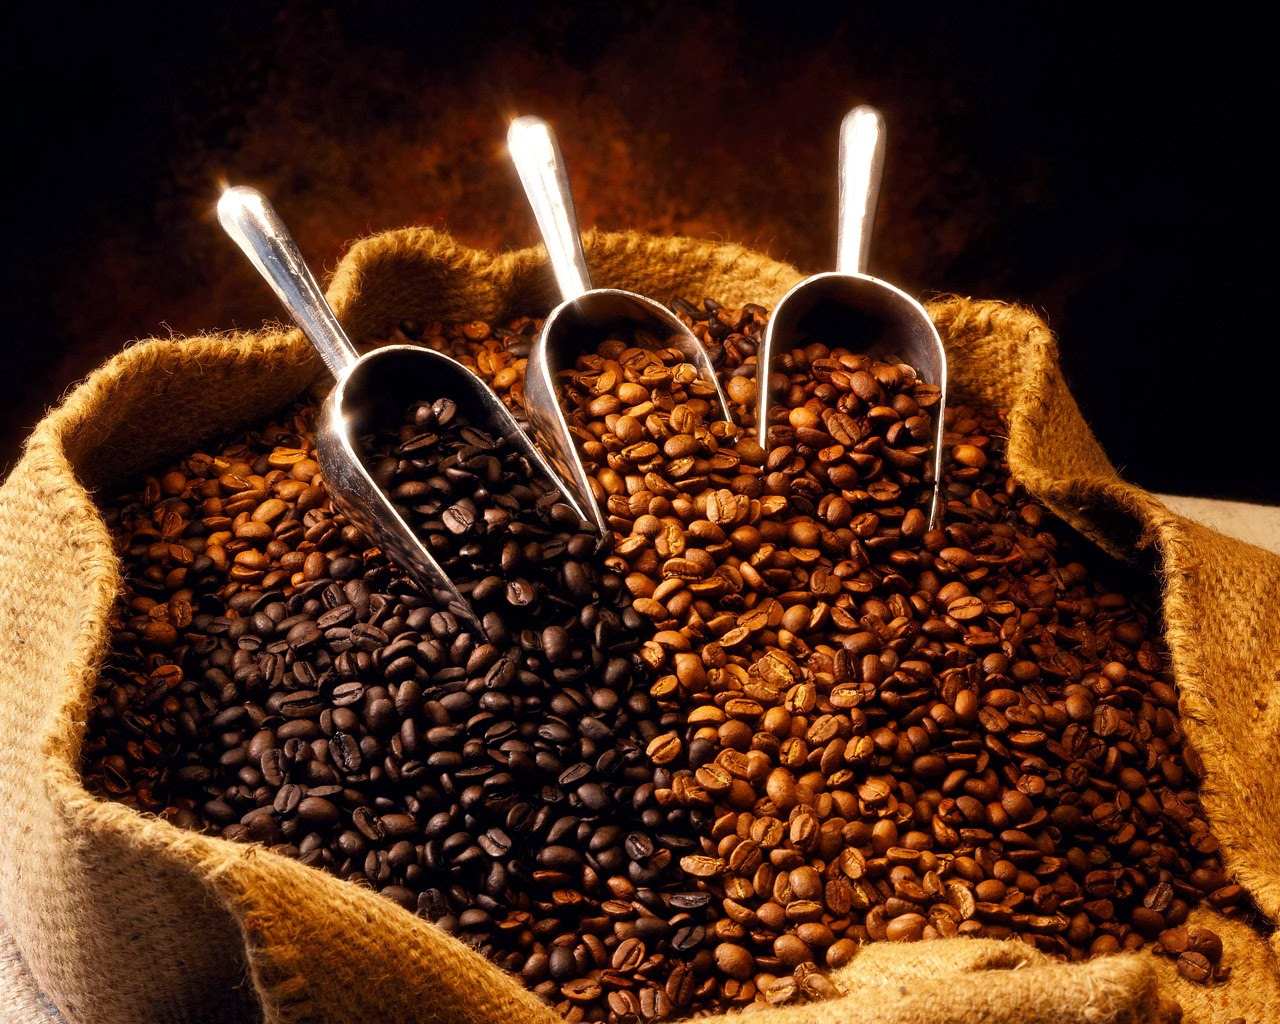 Coffee tends to lessen effects of inflammatory pathways